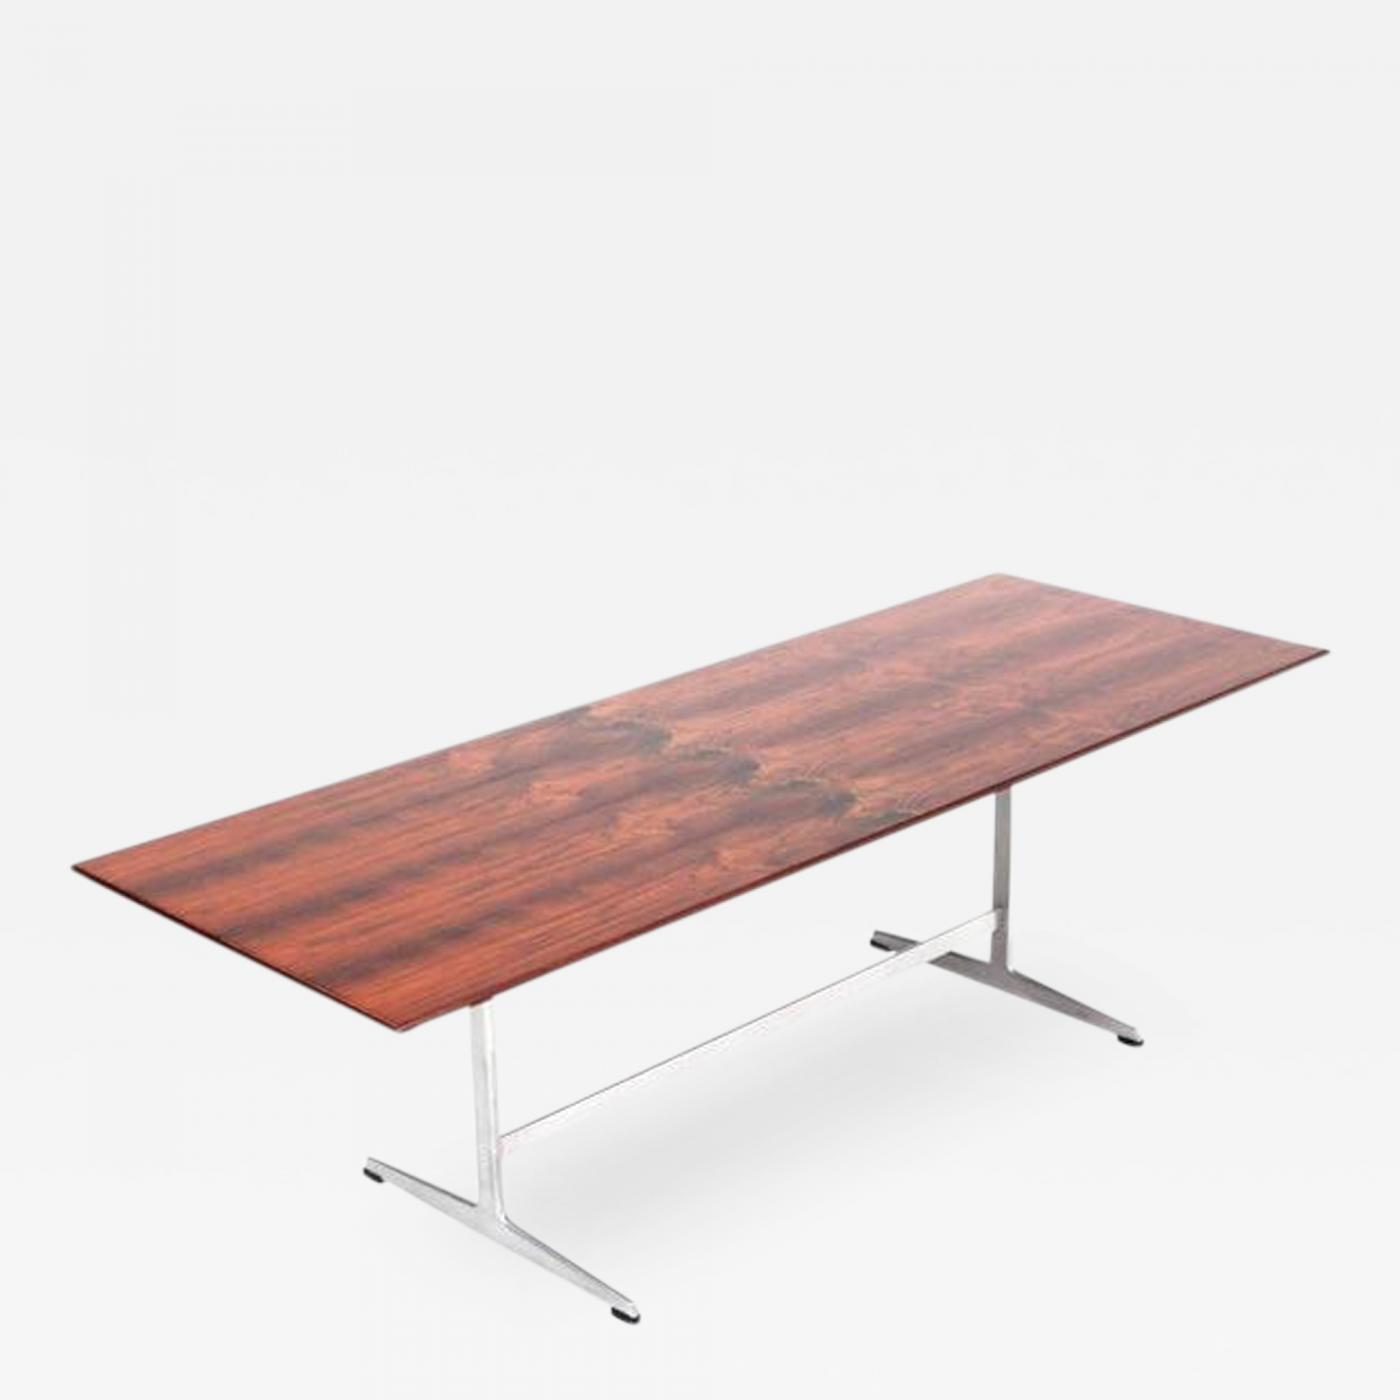 Arne Jacobsen Arne Jacobsen Rosewood Shaker Coffee Table